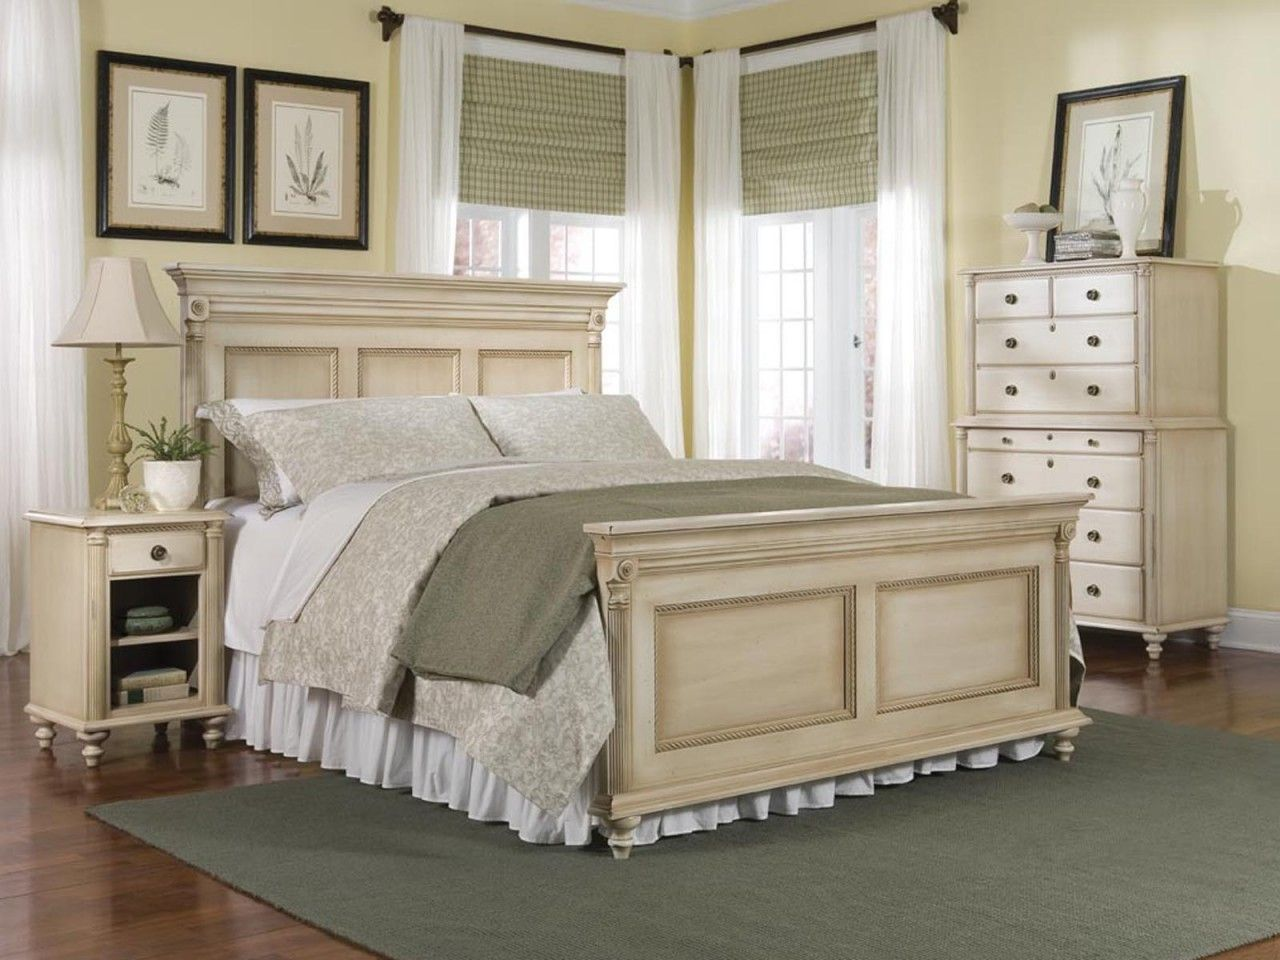 Vintage Cream Bedroom Furniture Sets - Vintage Cream Bedroom Furniture Sets Bedroom Furniture Pinterest